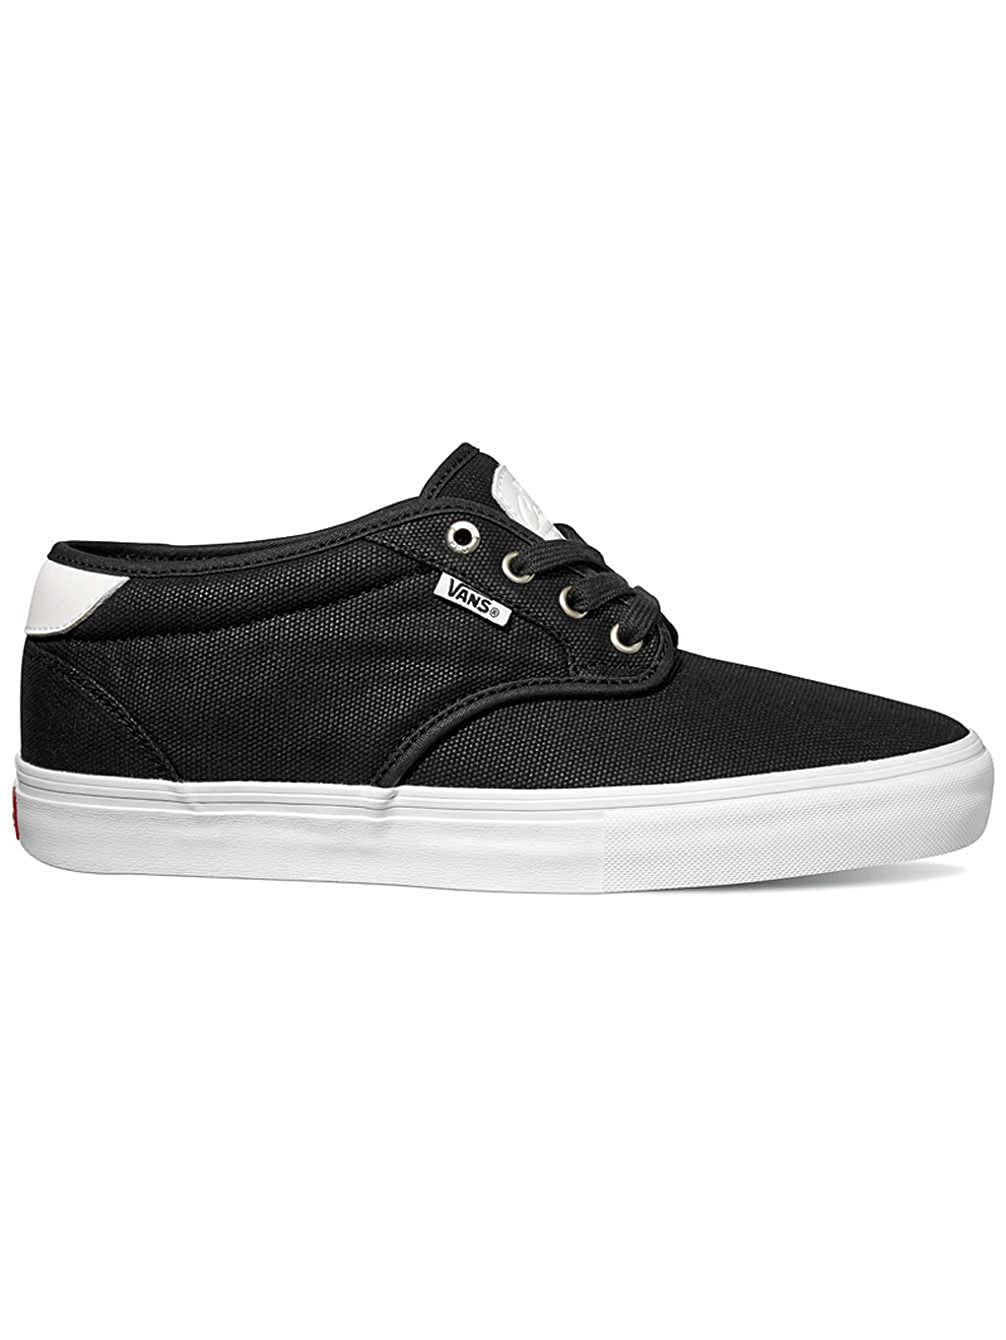 3f48700d8816cd Amazon.com  Vans - Mens Chima Ferguson Pro Skate Shoes  Vans  Shoes